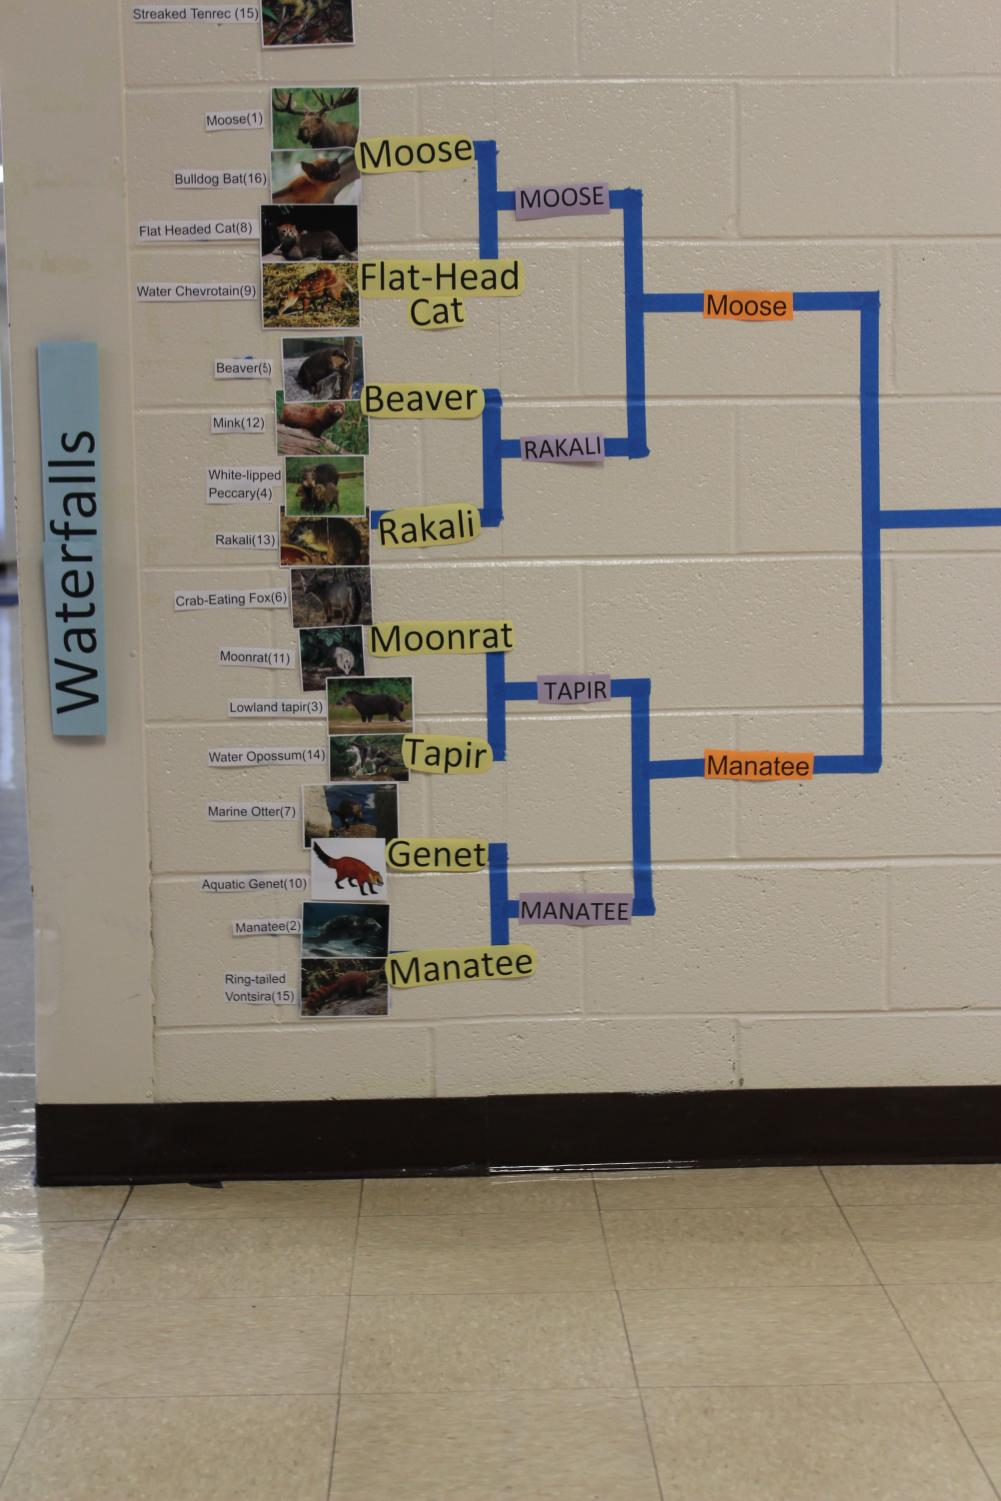 Waterfalls+bracket+after+three+rounds+in+the+tournament.+